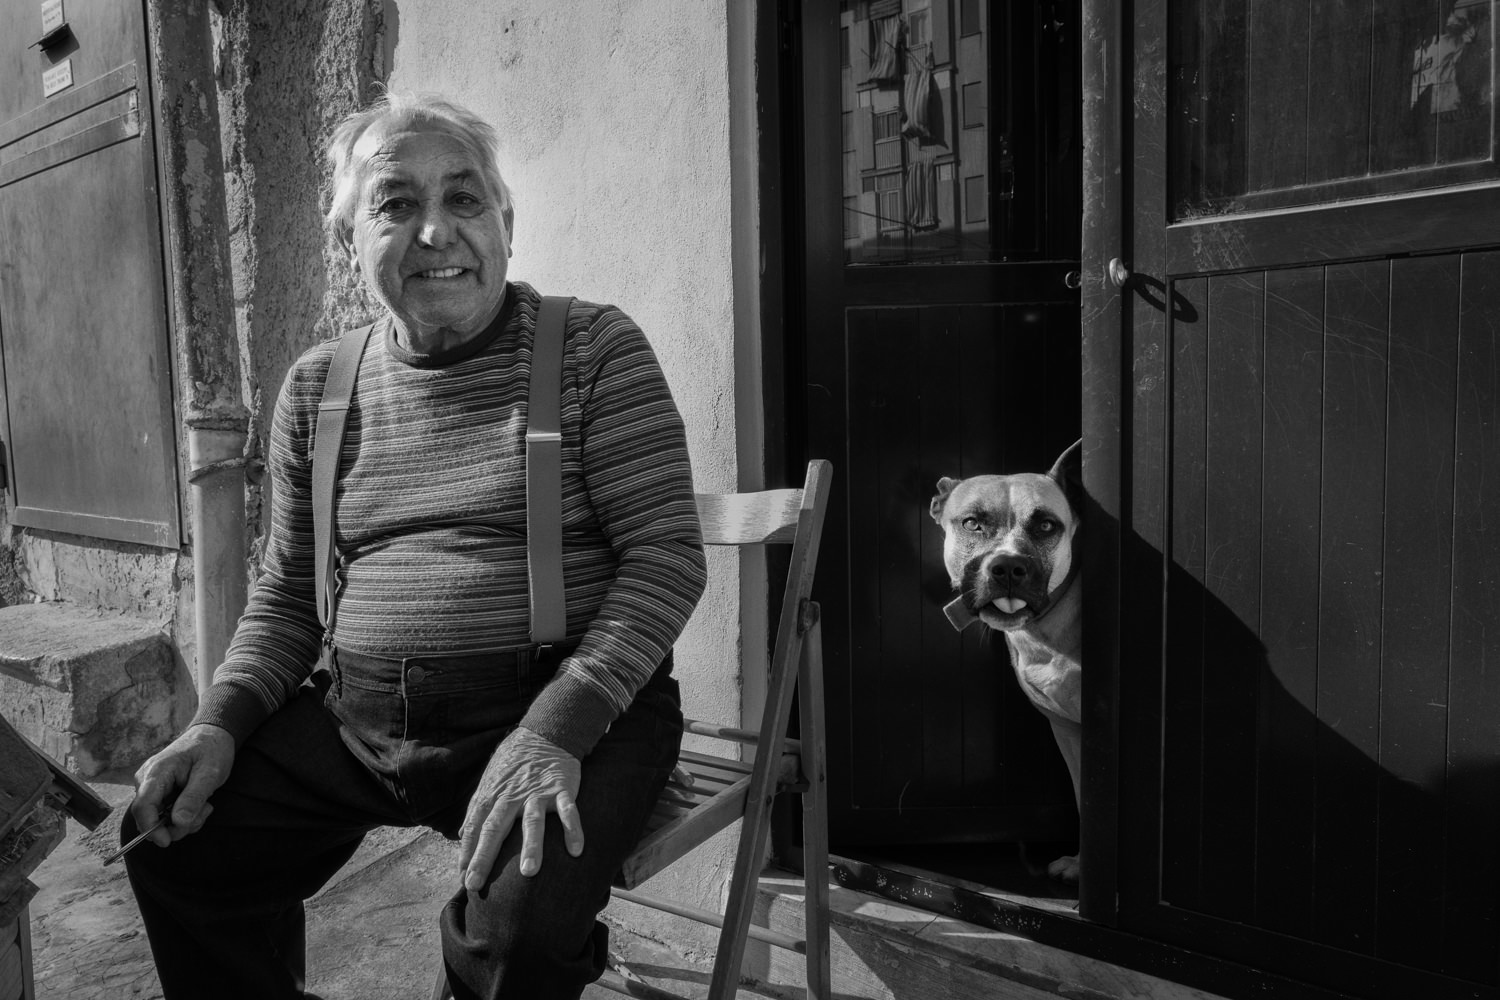 street-photography-Palermo-portraits-2017-01.jpg